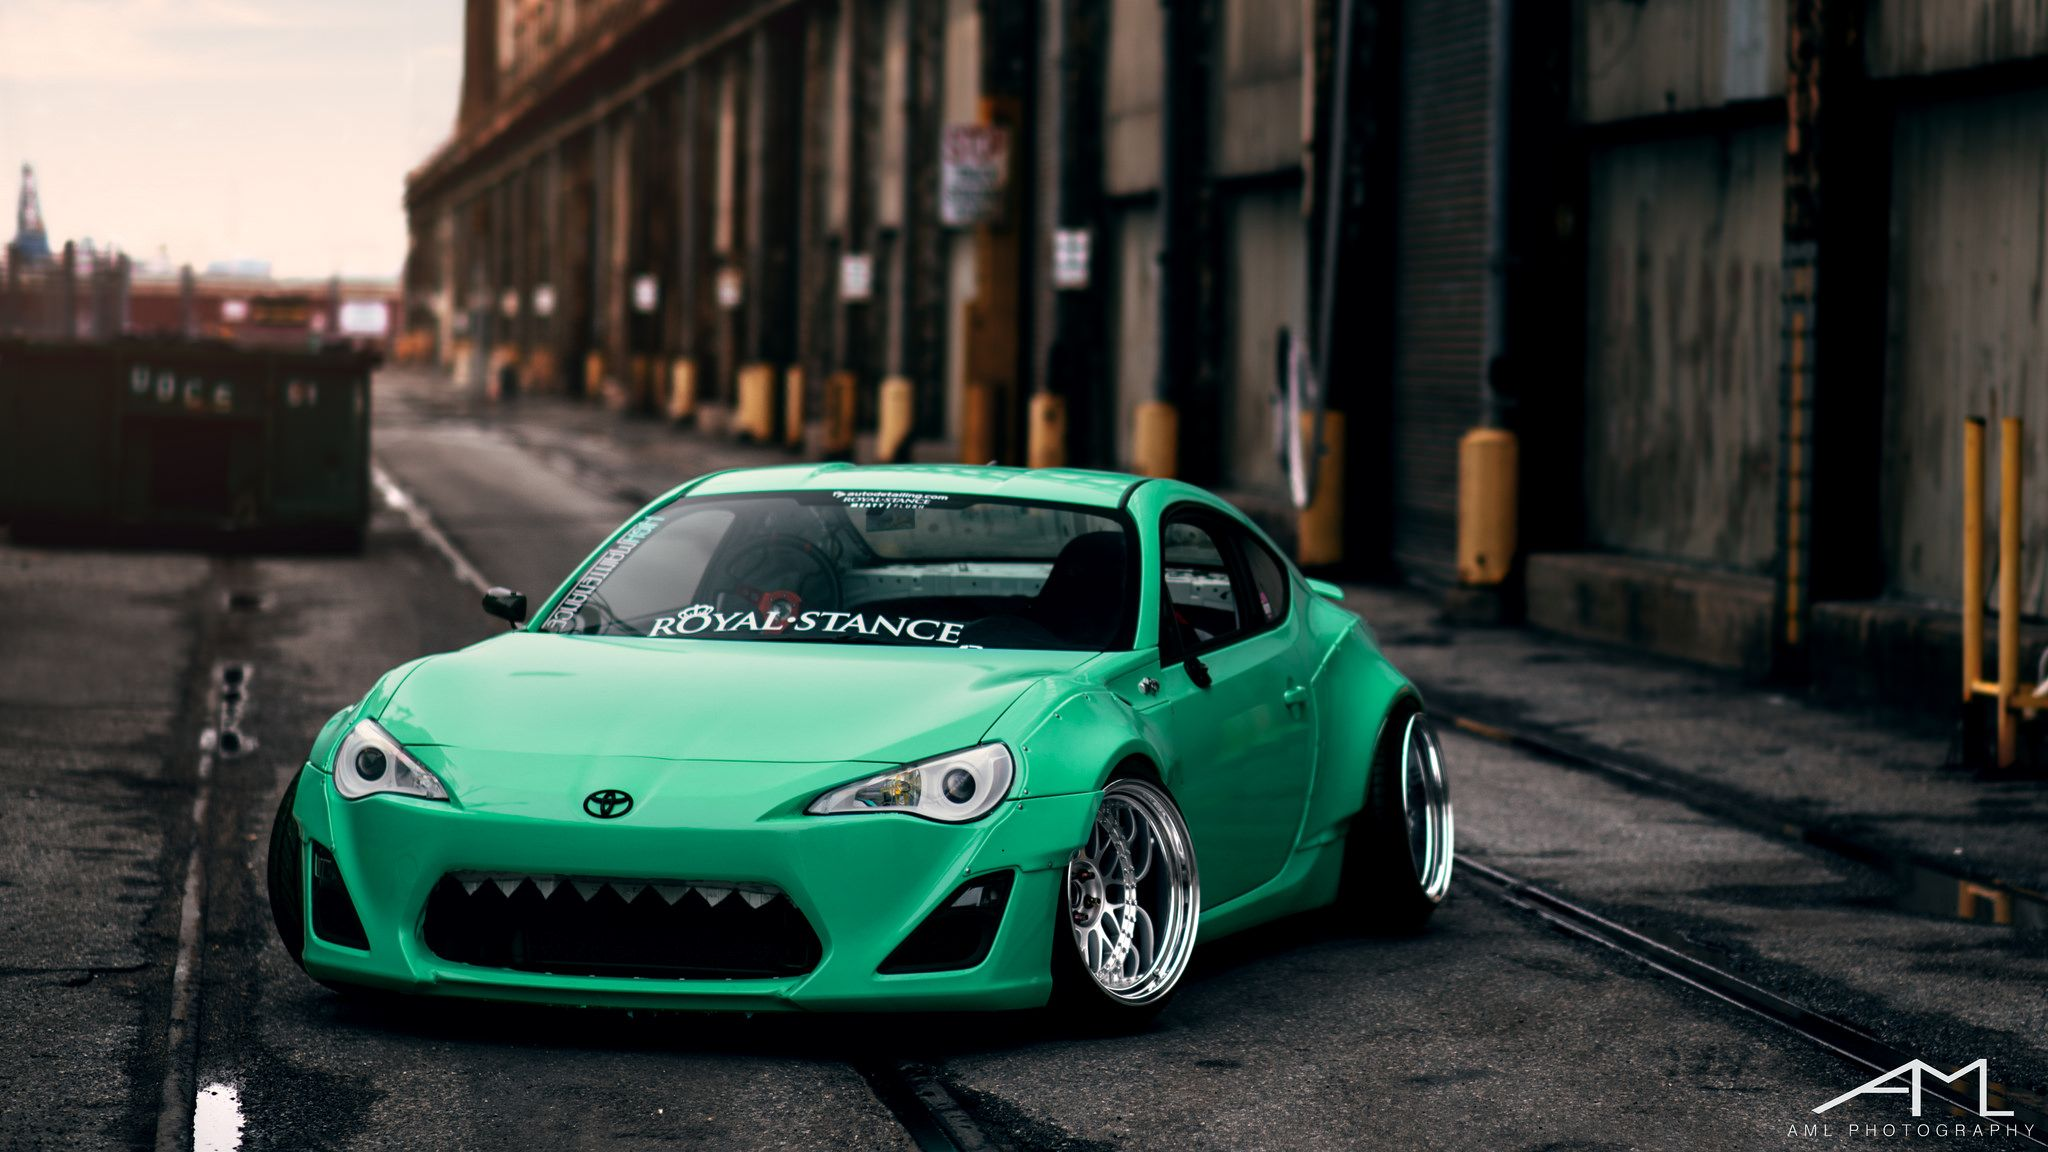 Amazing _k1ll1onaire_ Rocket Bunny Scion Frs 04 Awesome Design